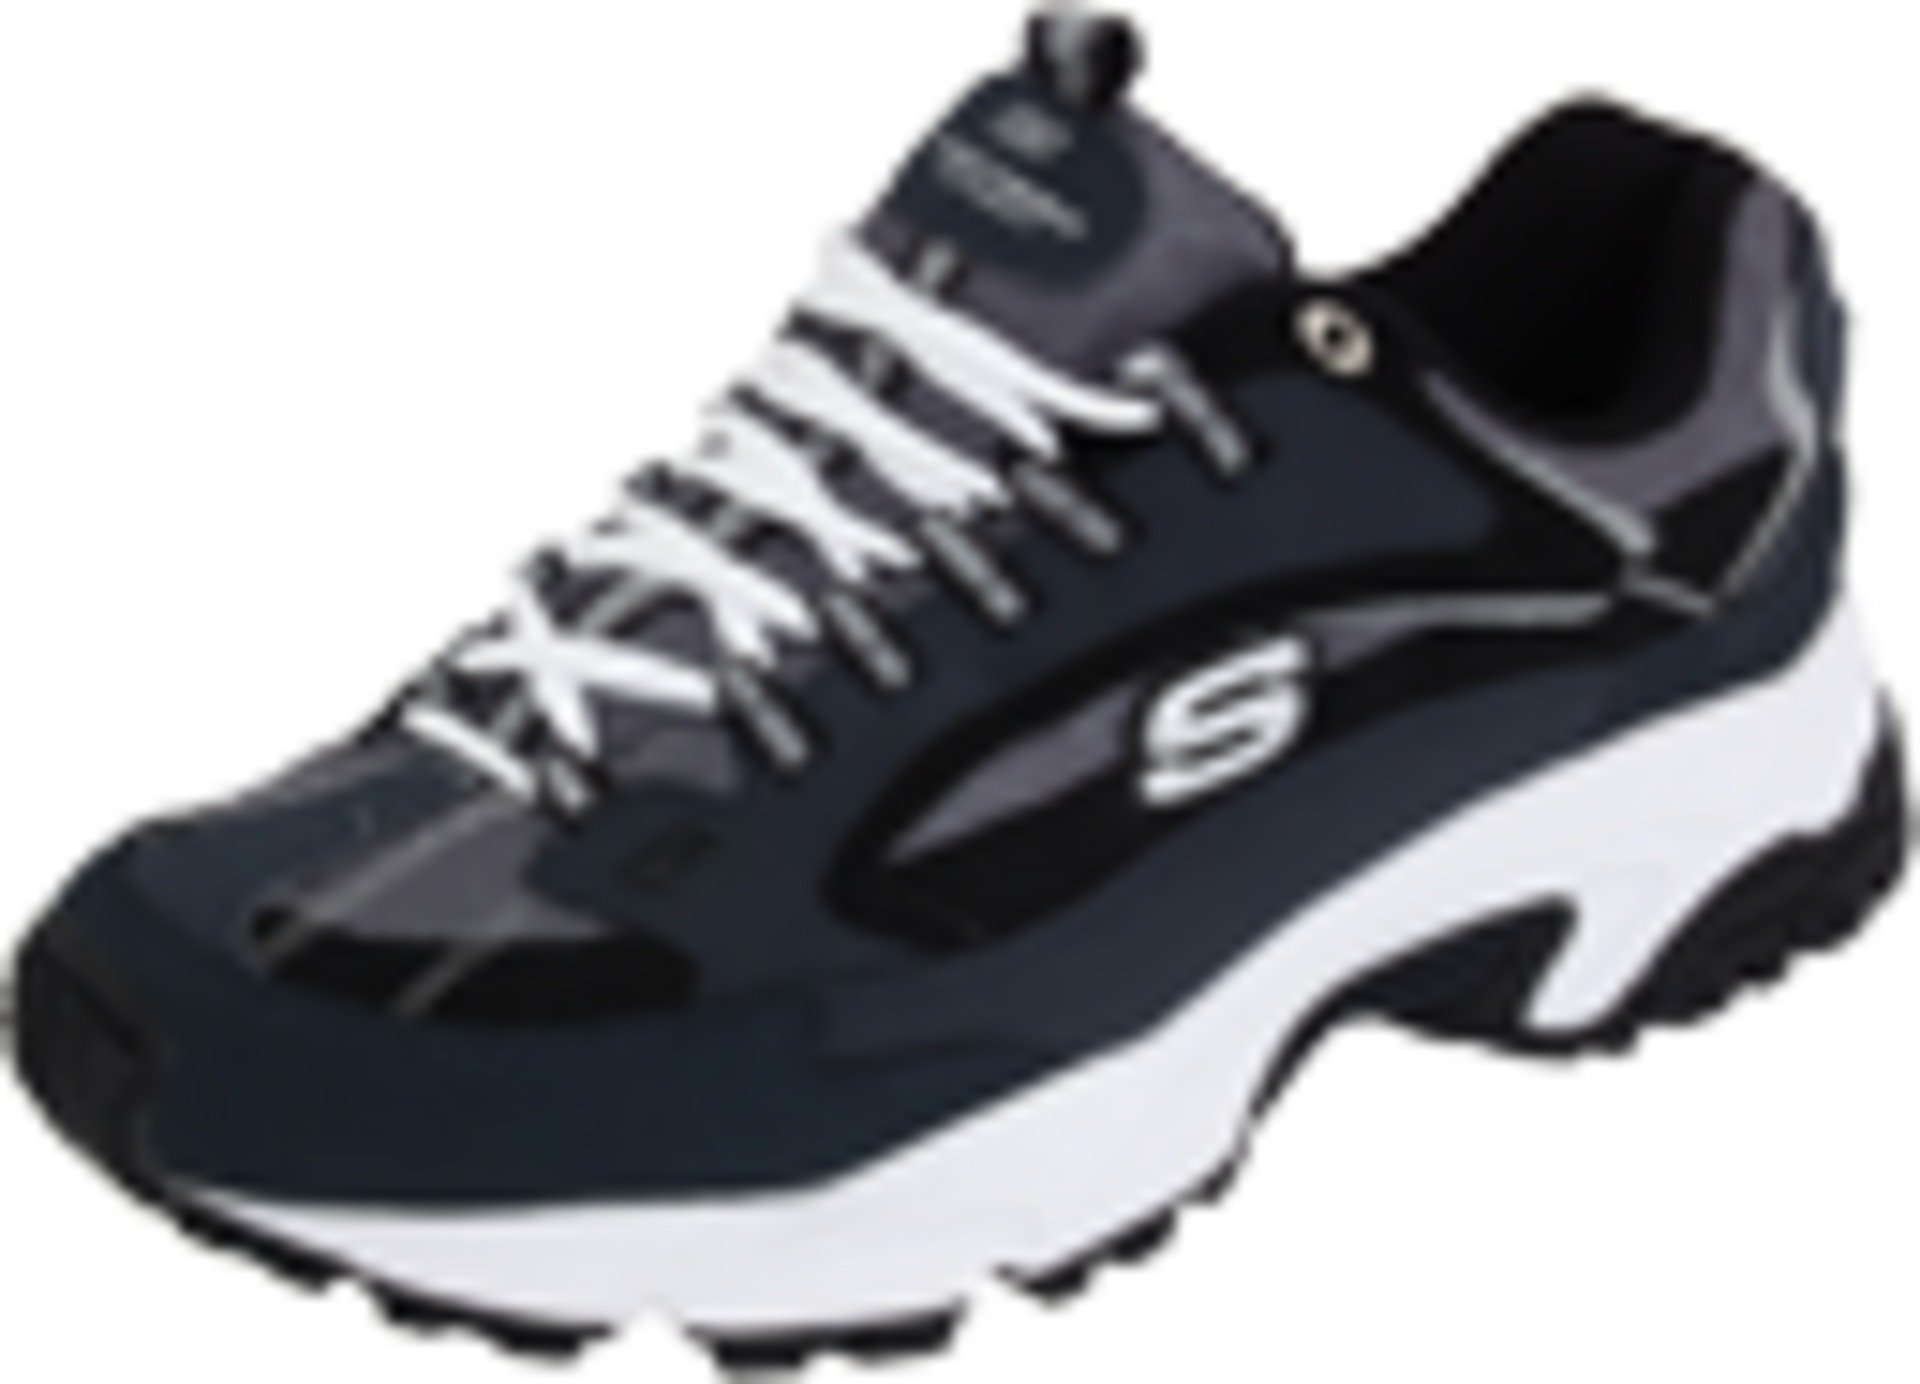 Skechers Sport Men's Stamina Nuovo Cutback Lace-Up Sneaker,Navy/Black,12 XW US